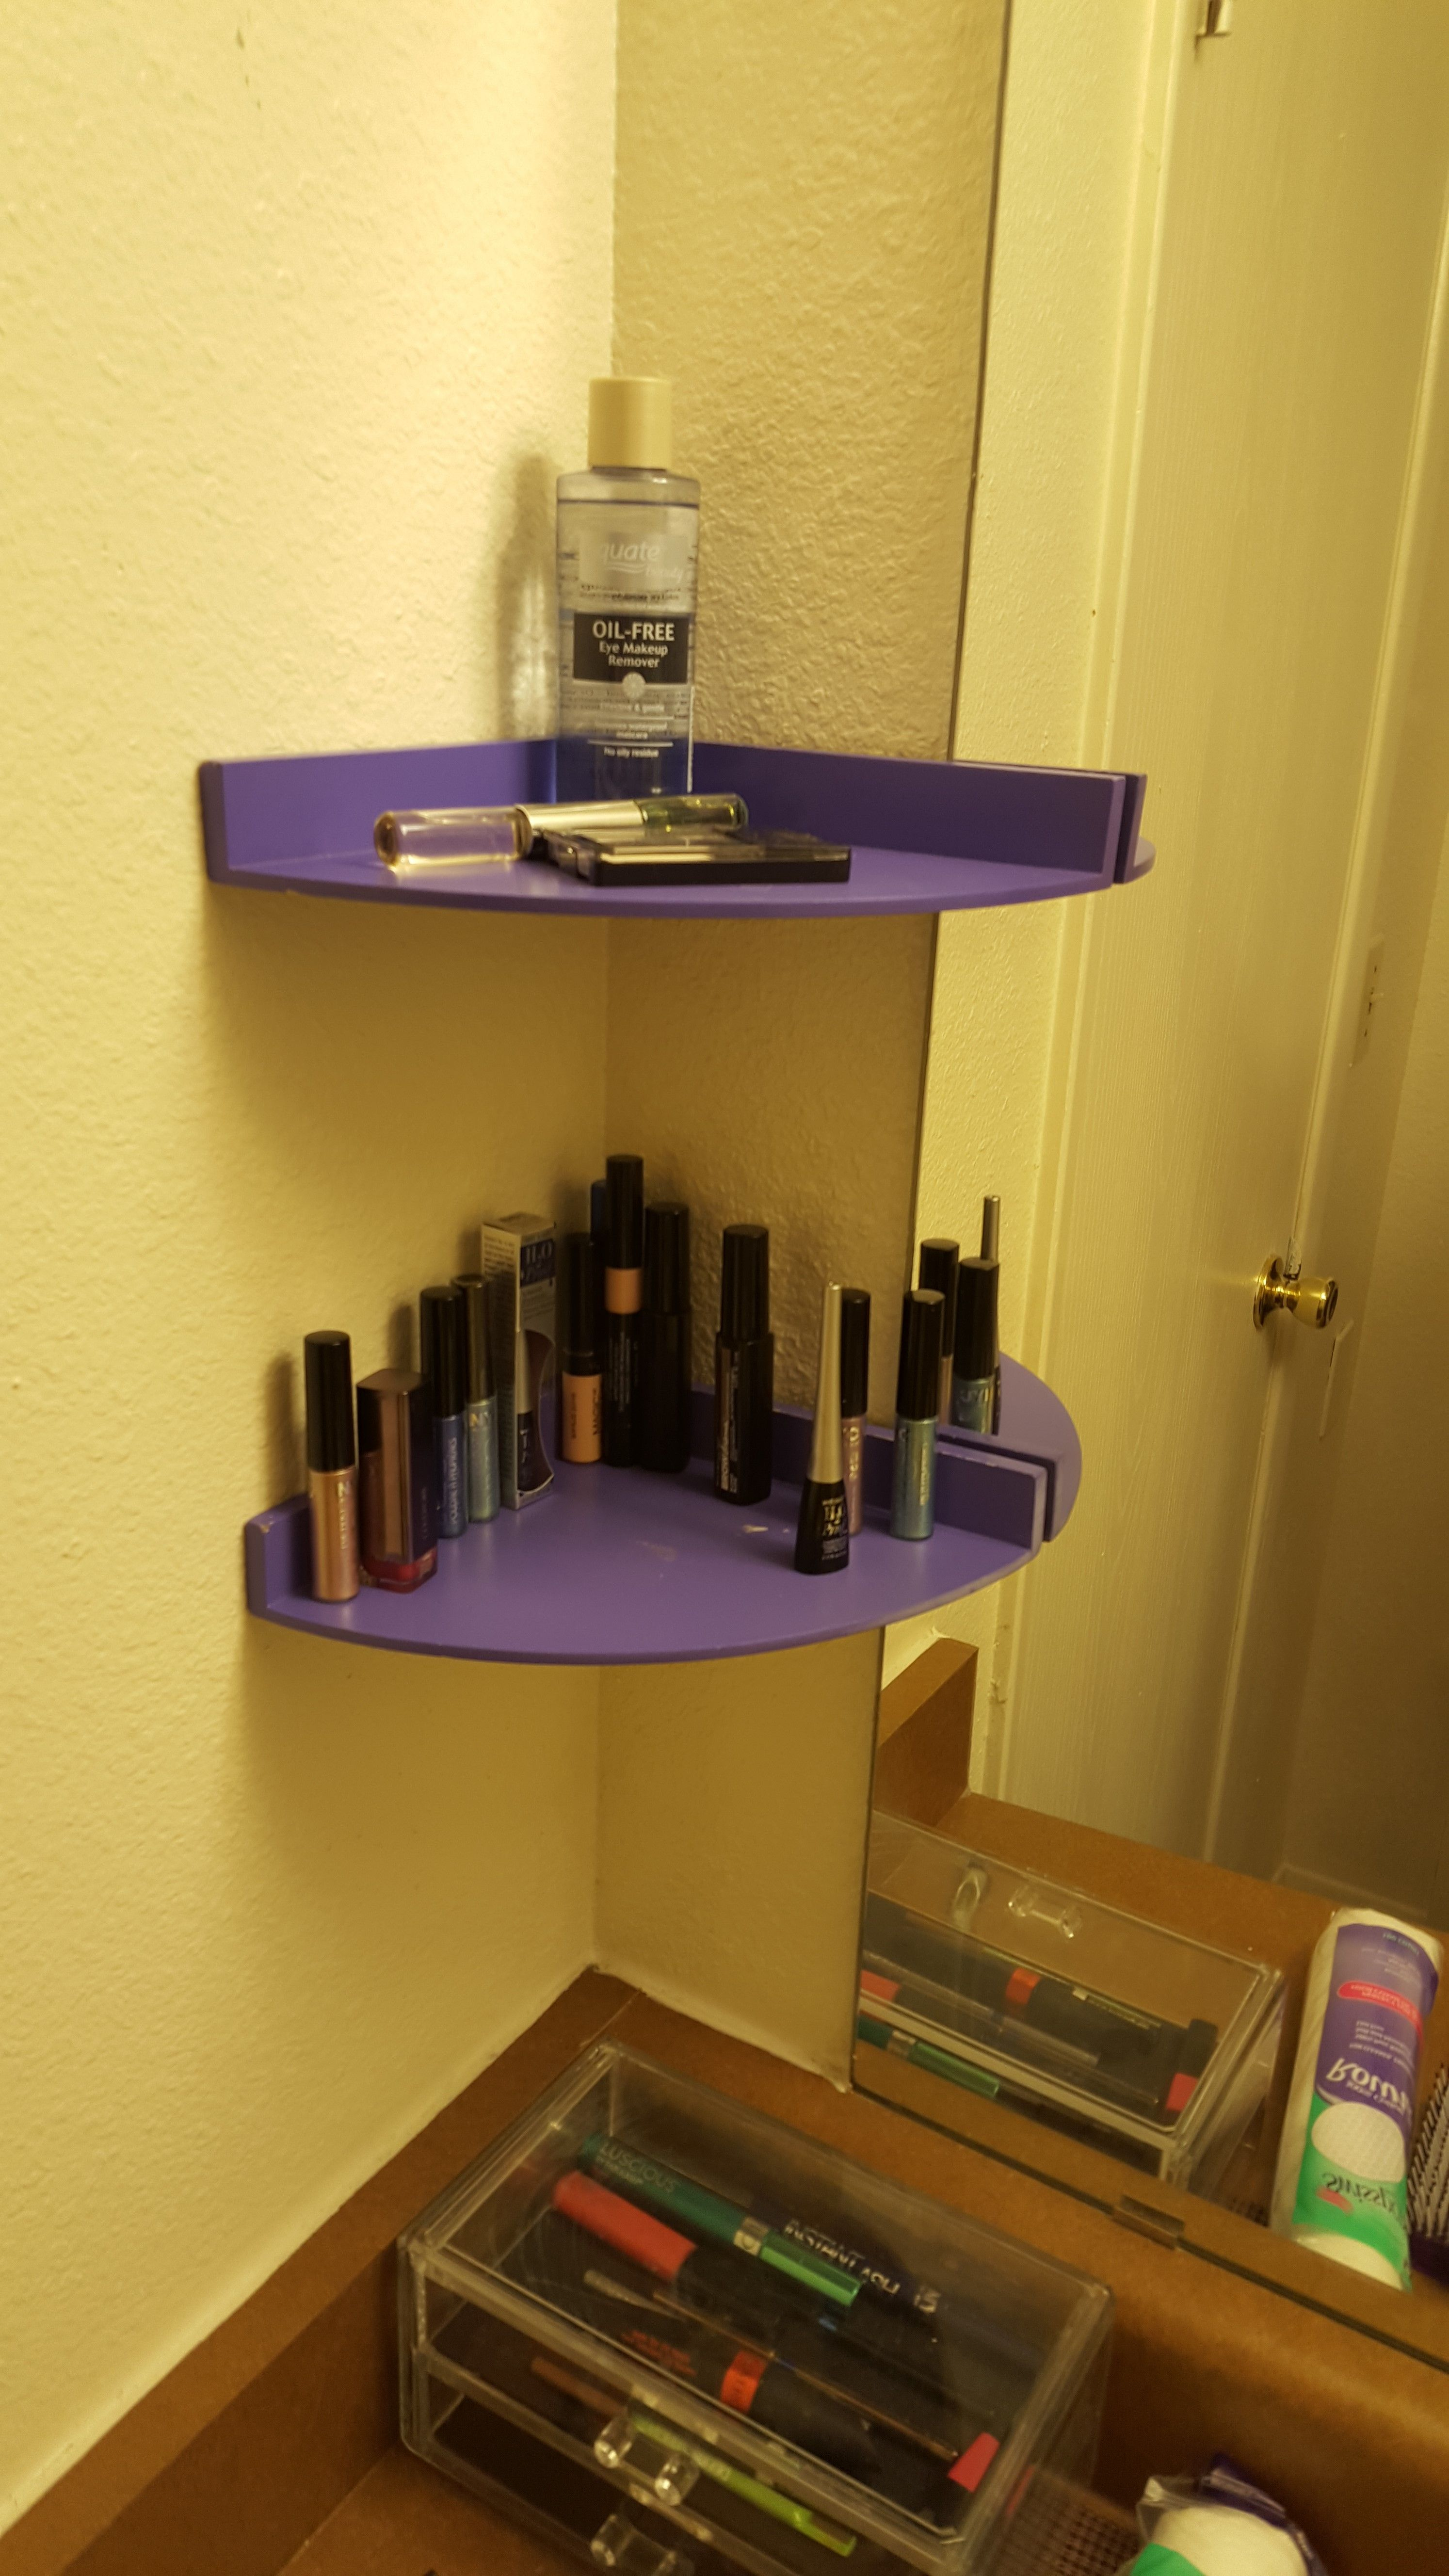 Using Command Strips These Shelves Do Their Job Of Holding Some A S Most Prized Procession Makeup